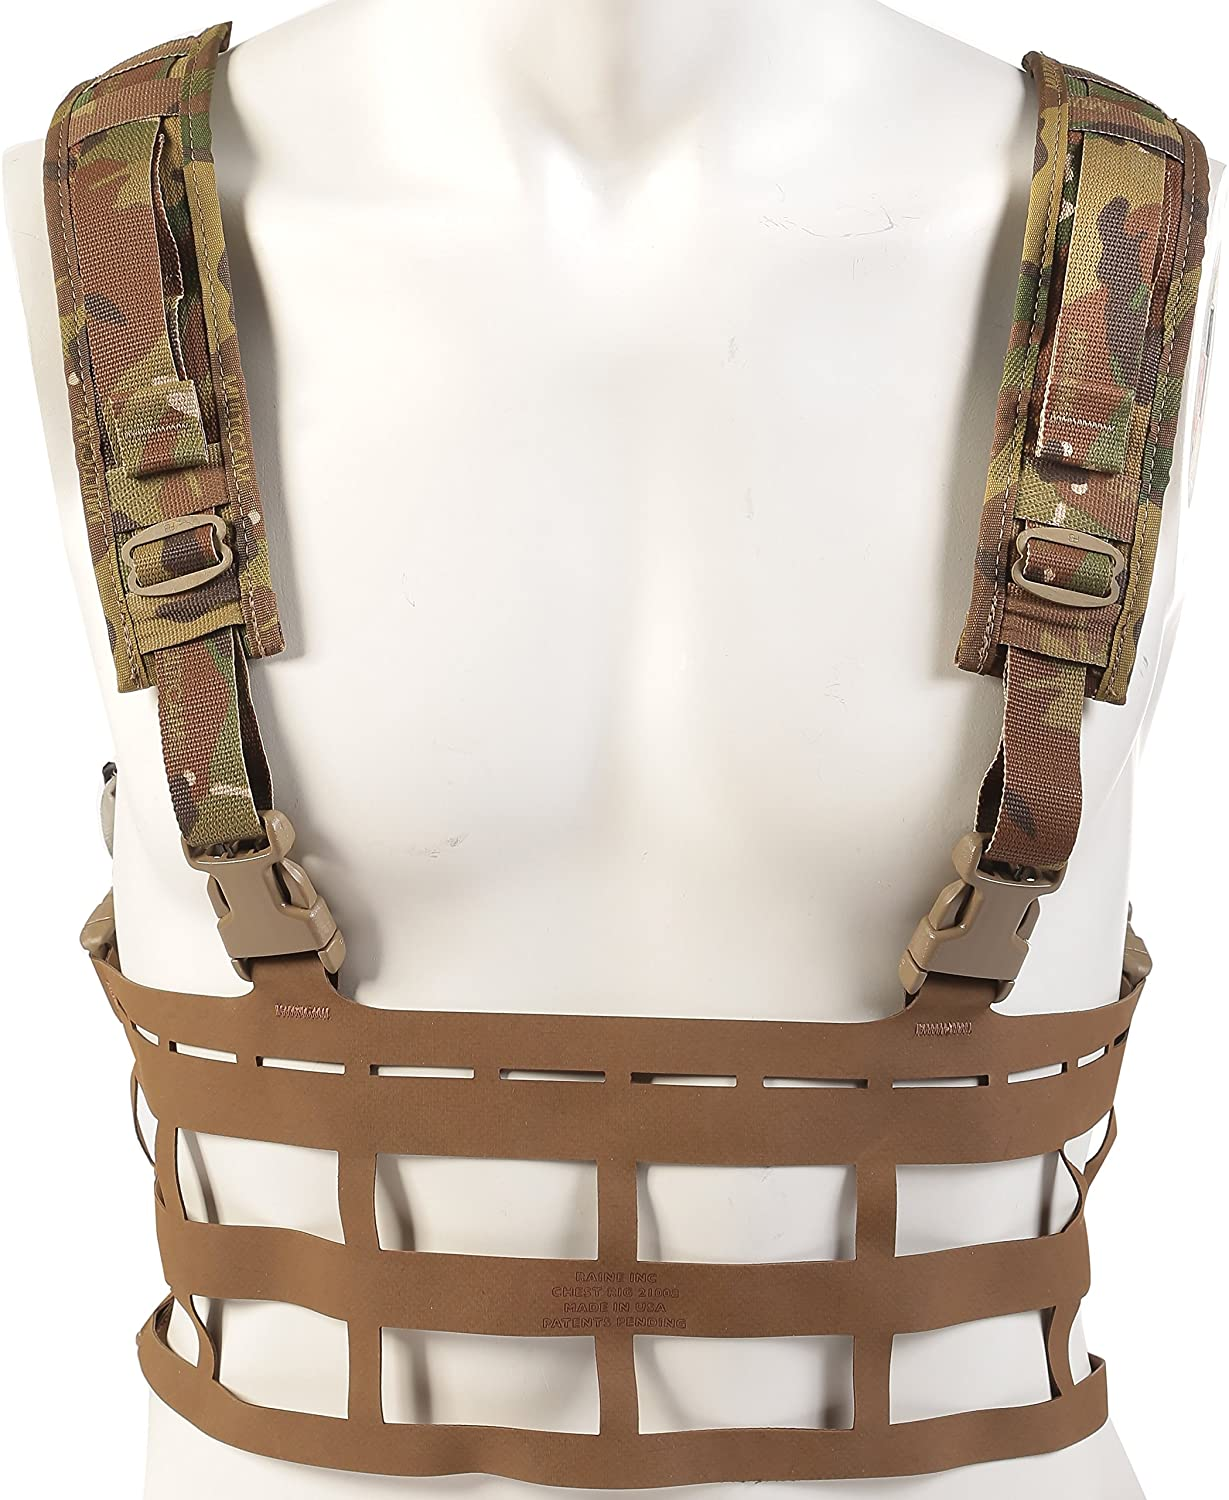 Raine Vector Ultra Light Large Special Forces Chest Rig, Multicam